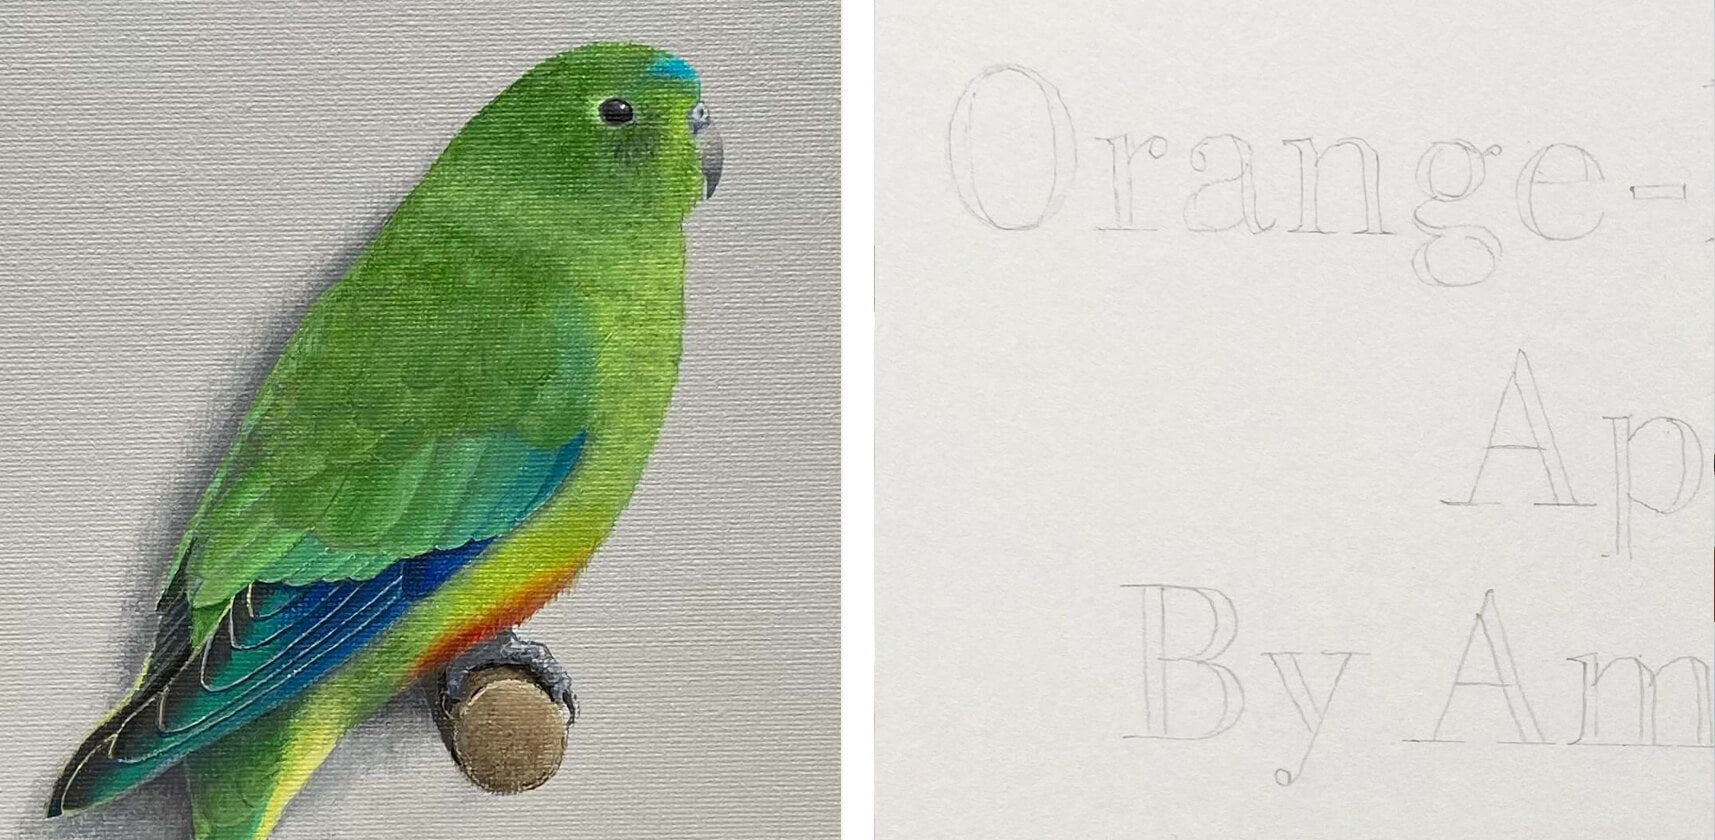 Orange-bellied parrot and hand lettering by Amanda Gosse